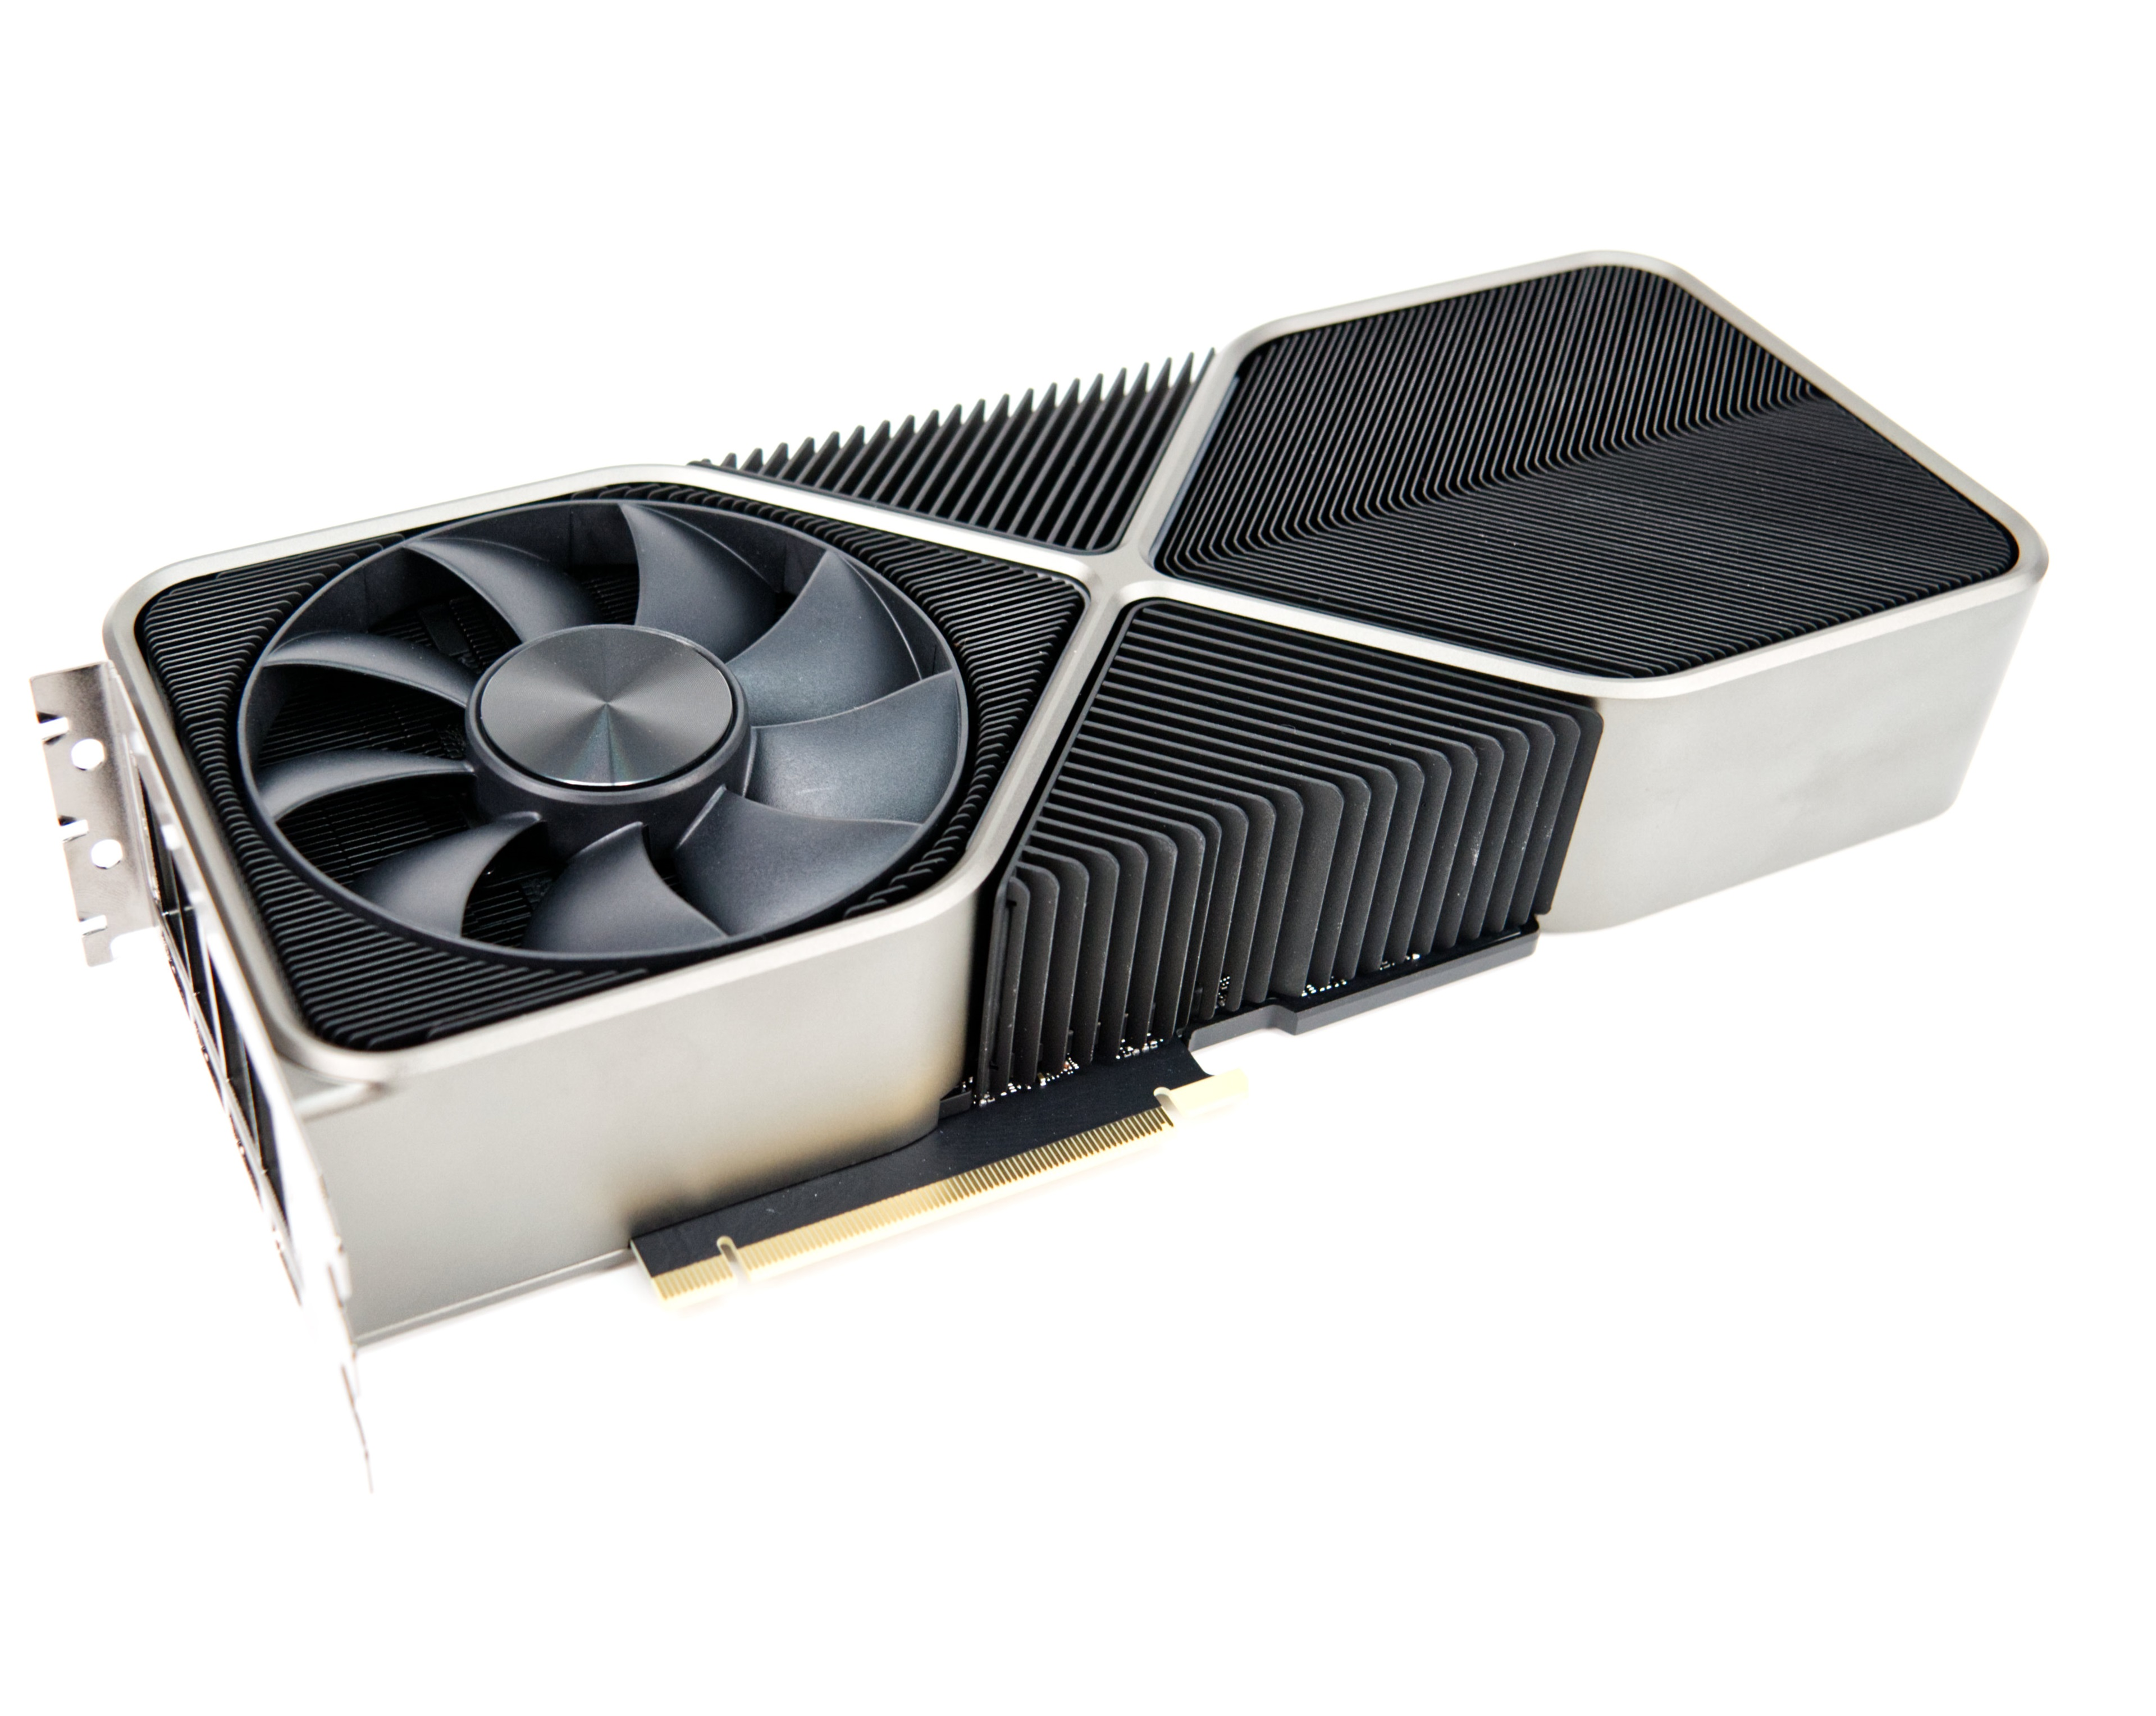 Nvidia GeForce RTX 3090 FE - High-end graphics power at a premium price! - Notebookcheck.net